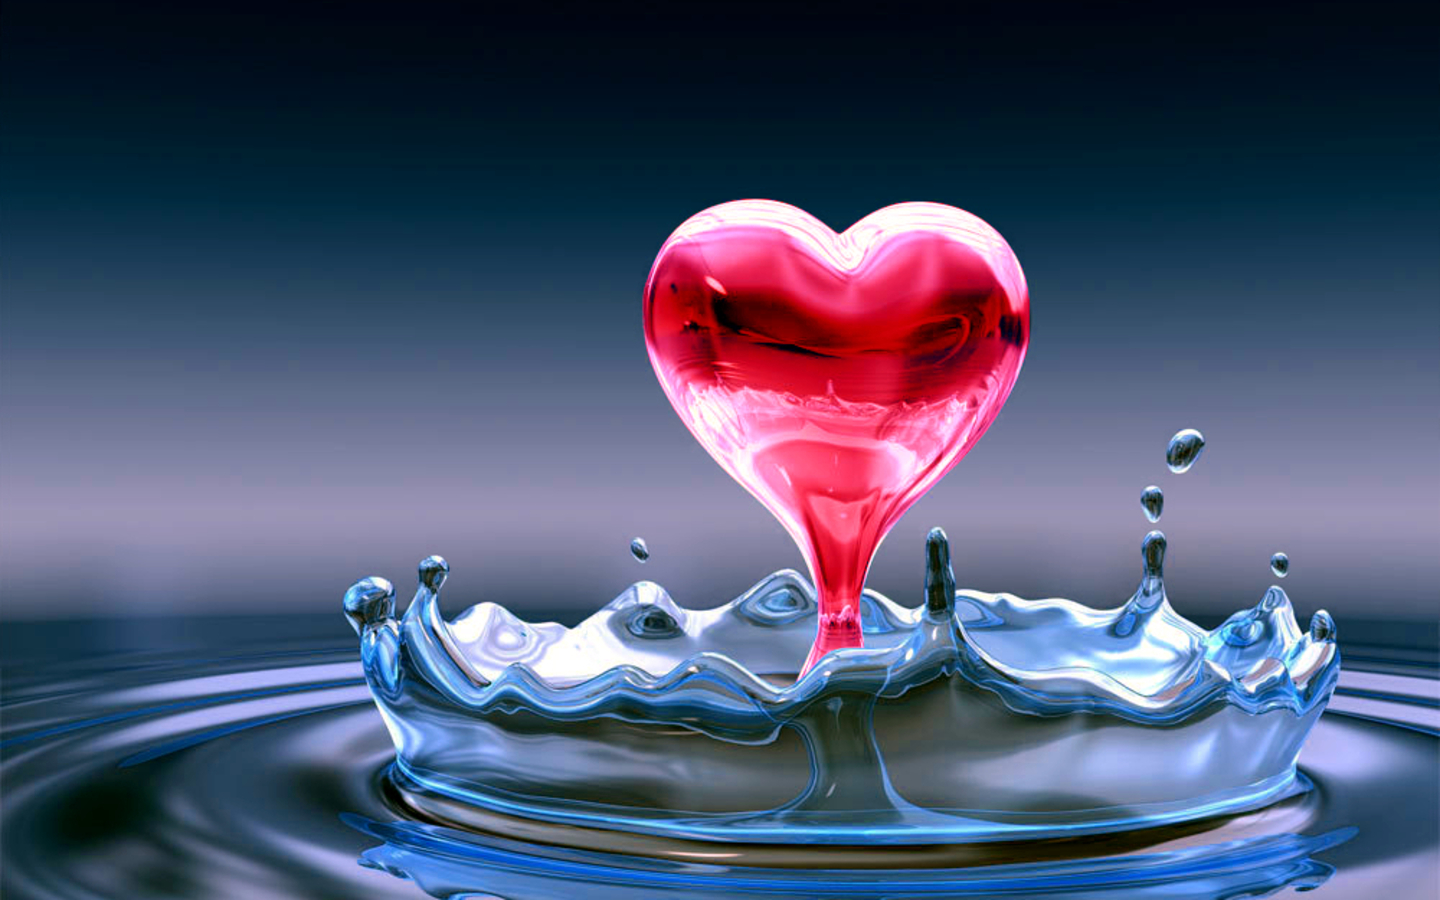 http://1.bp.blogspot.com/-f3zg2MHxYwc/ULL-z1qBnpI/AAAAAAAABJQ/lxFSluqK6EA/s1600/The-best-top-desktop-love-wallpapers-0a-hd-love-wallpaper-red-heart-3d-water.jpg